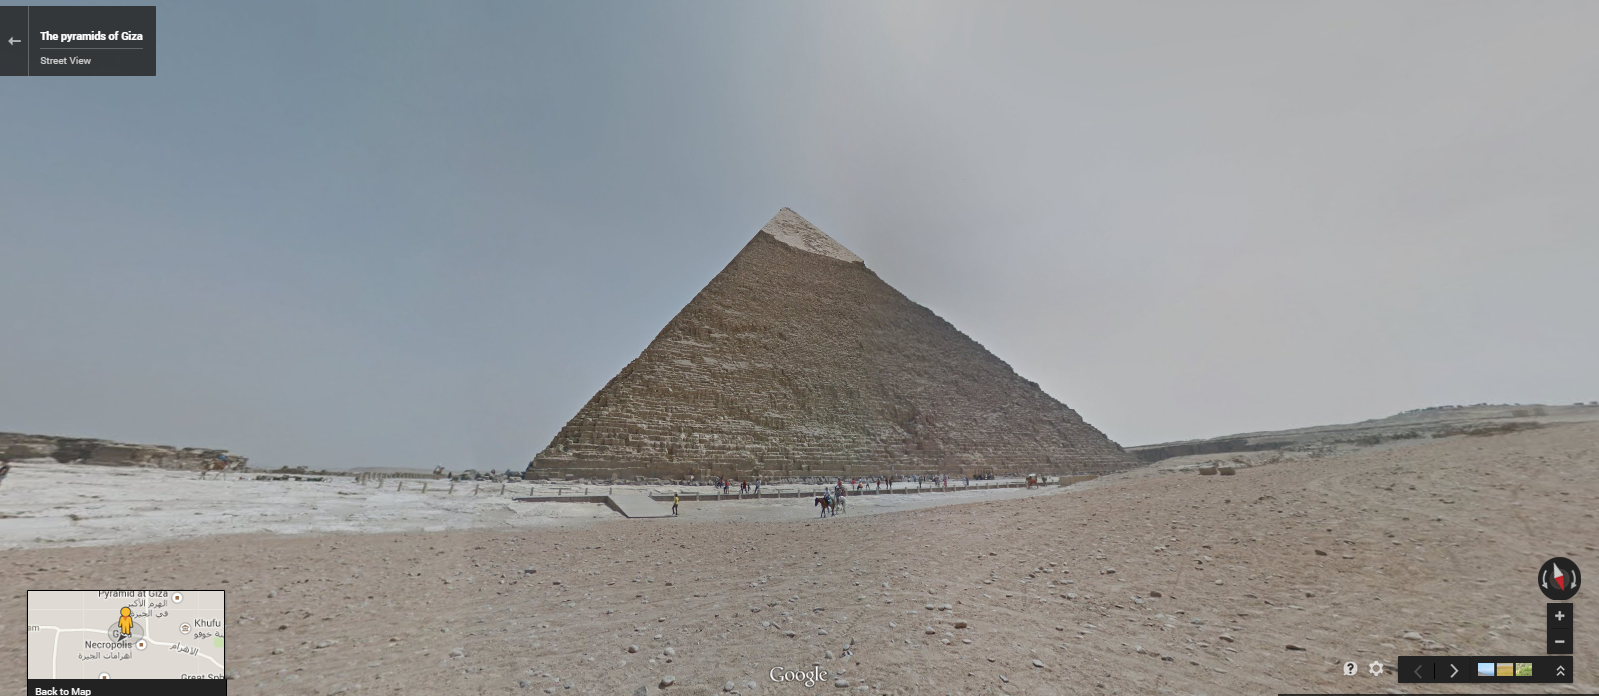 The Pyramid of Khafre in Giza. Click here to view in Google Street View.